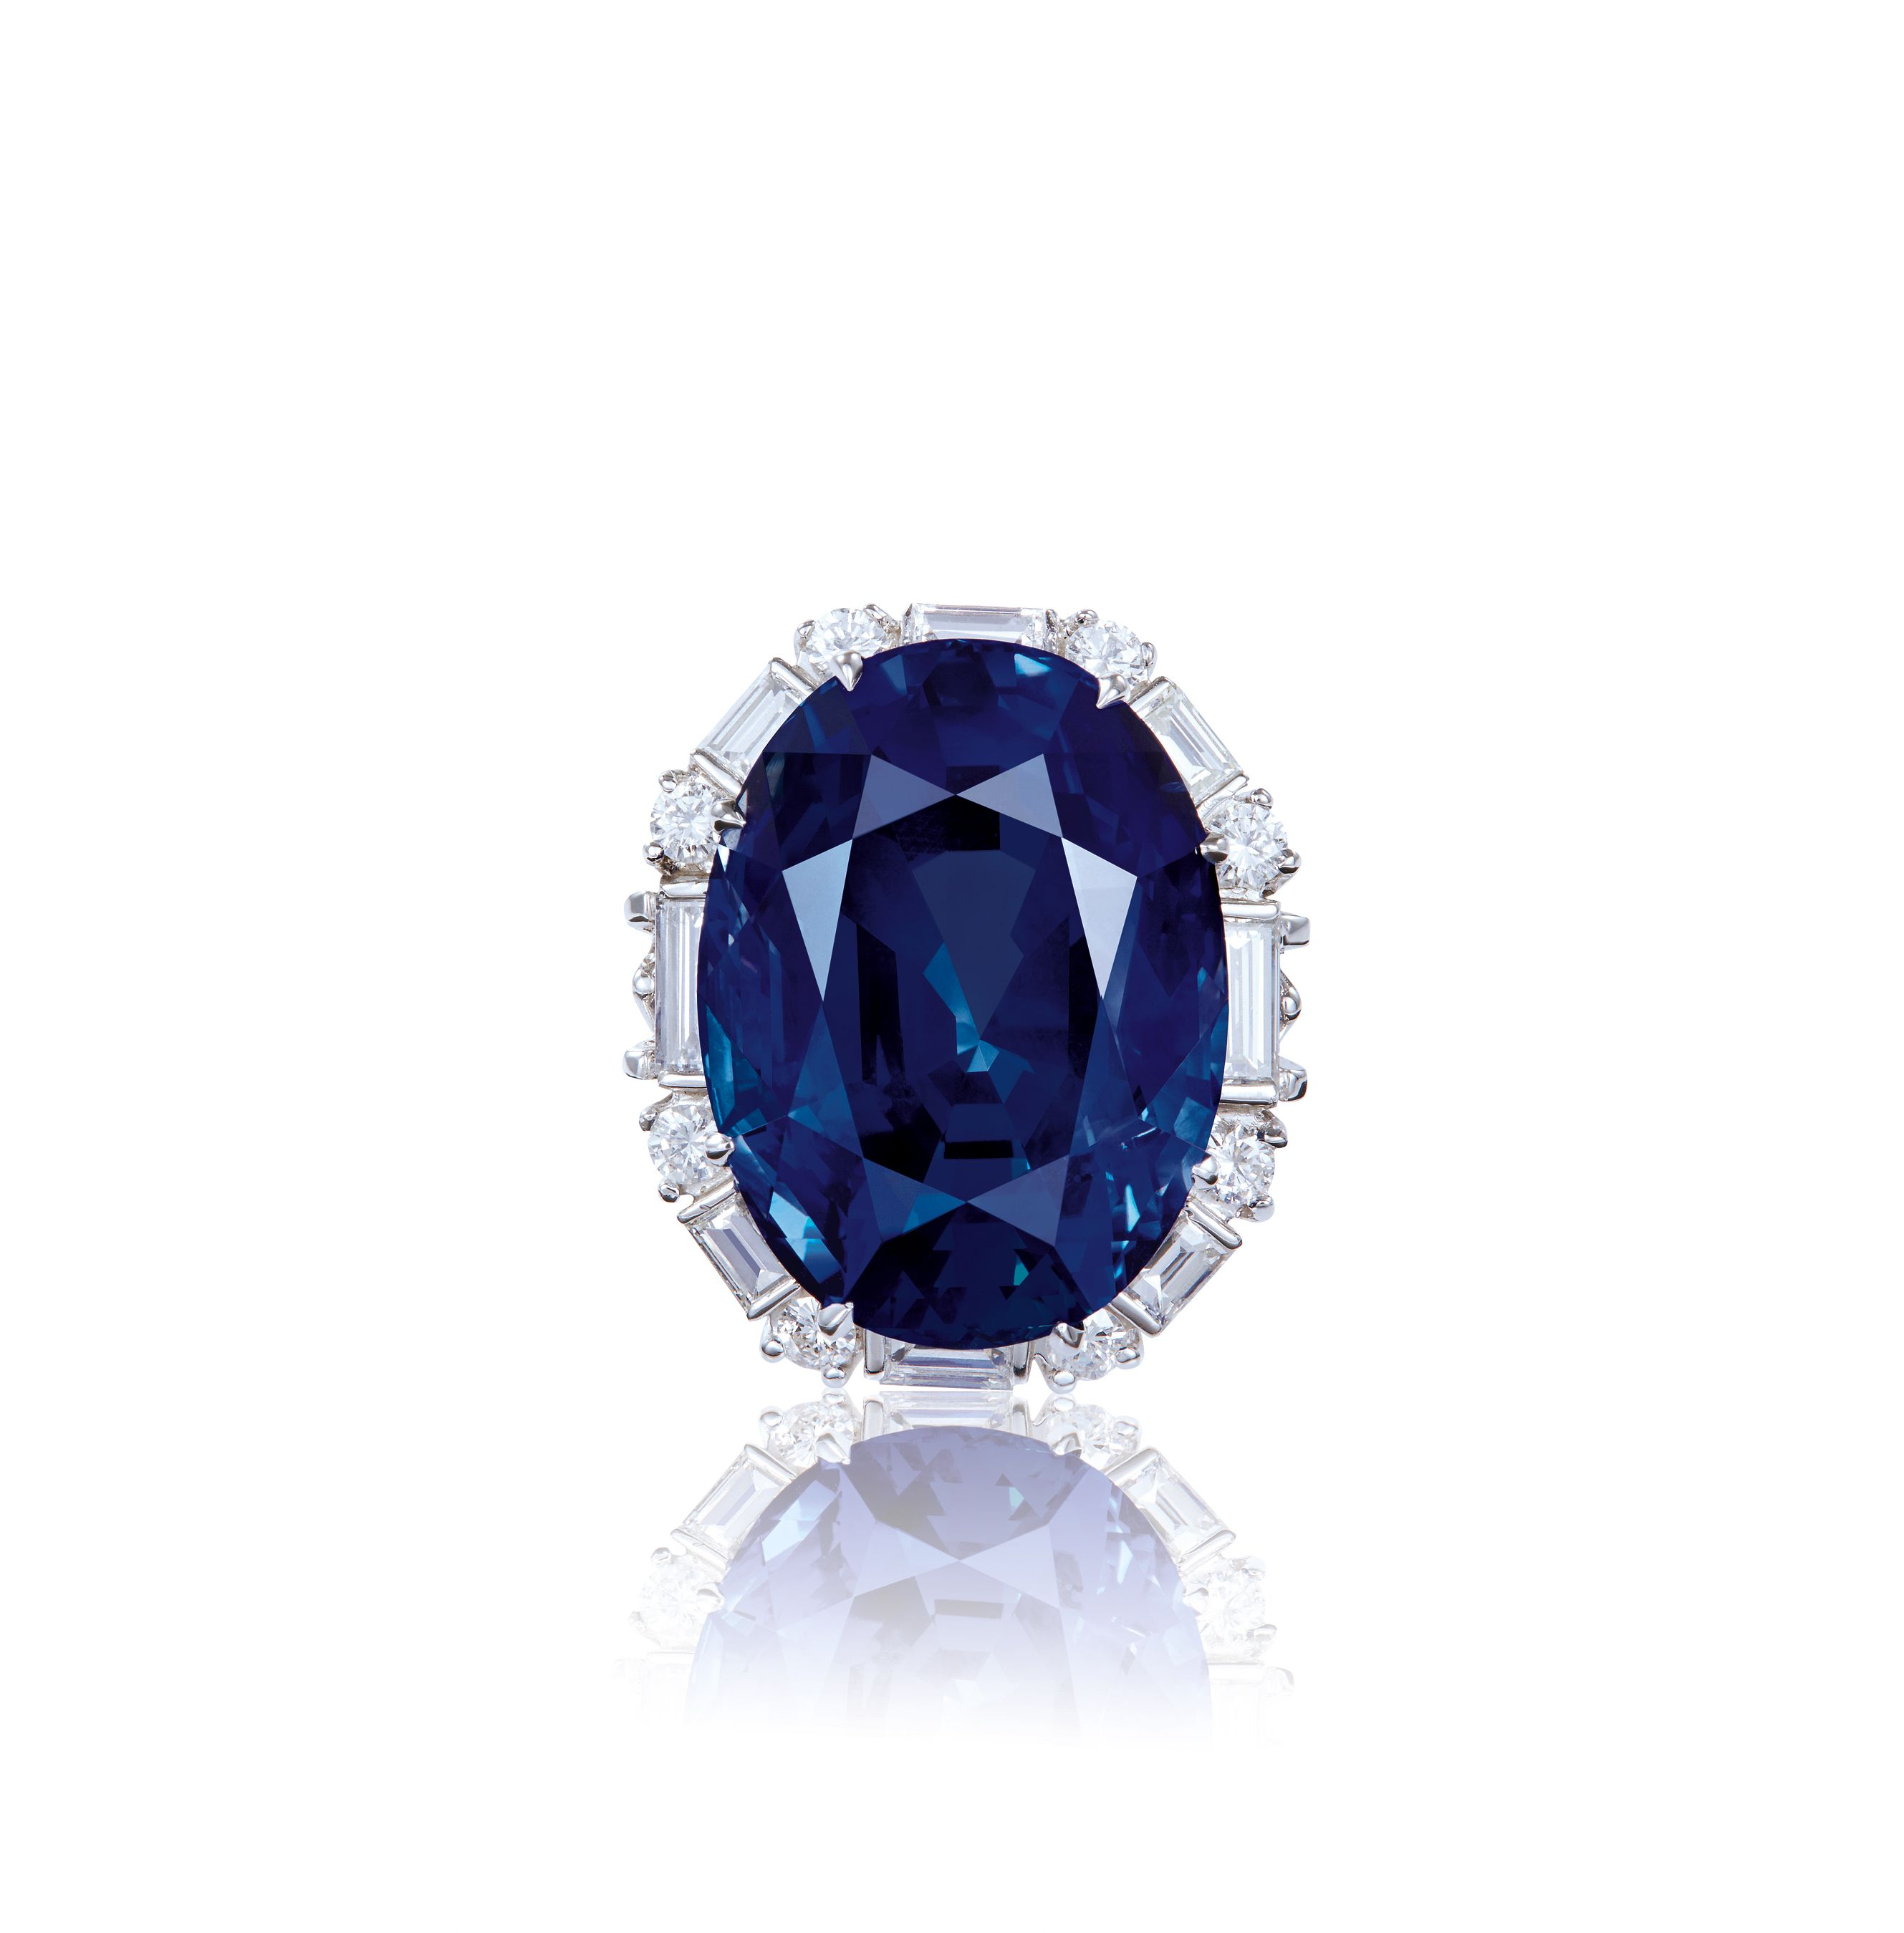 and by ring diamond stepped bordered baguette pin trombino the cabochon sapphire bulgari